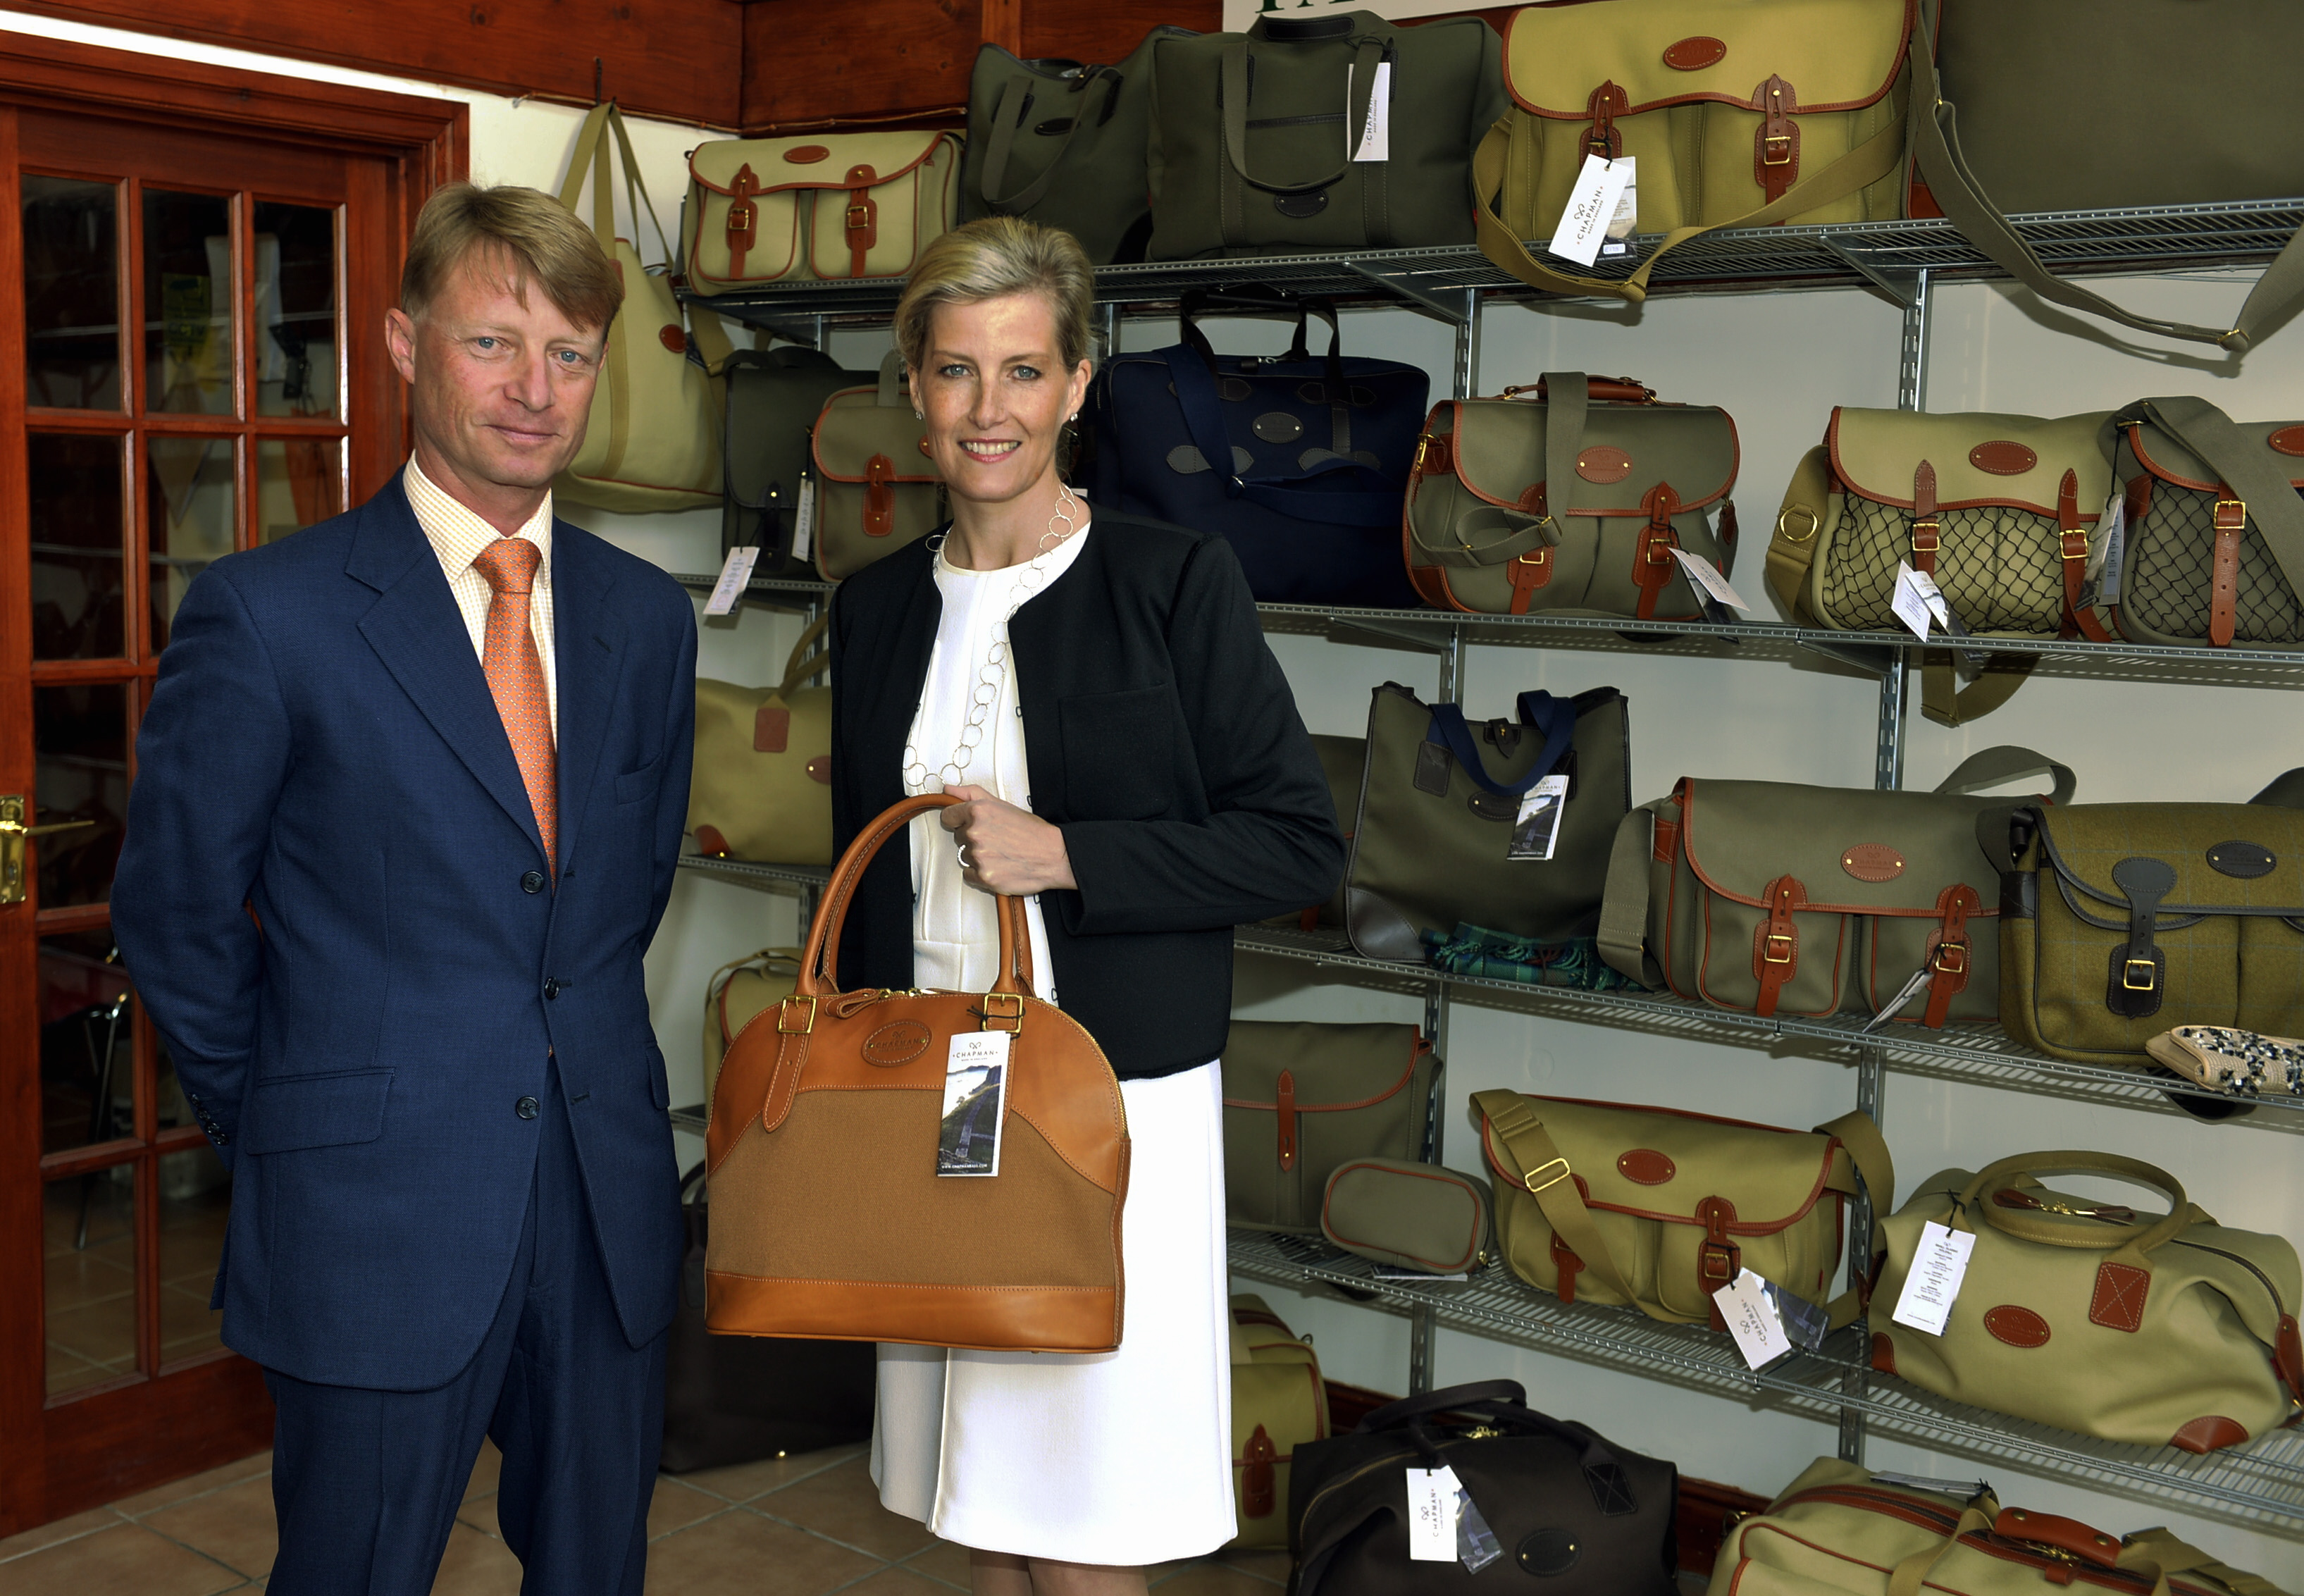 Chapman Bags: The successful British exporter favoured by The Countess of Wessex